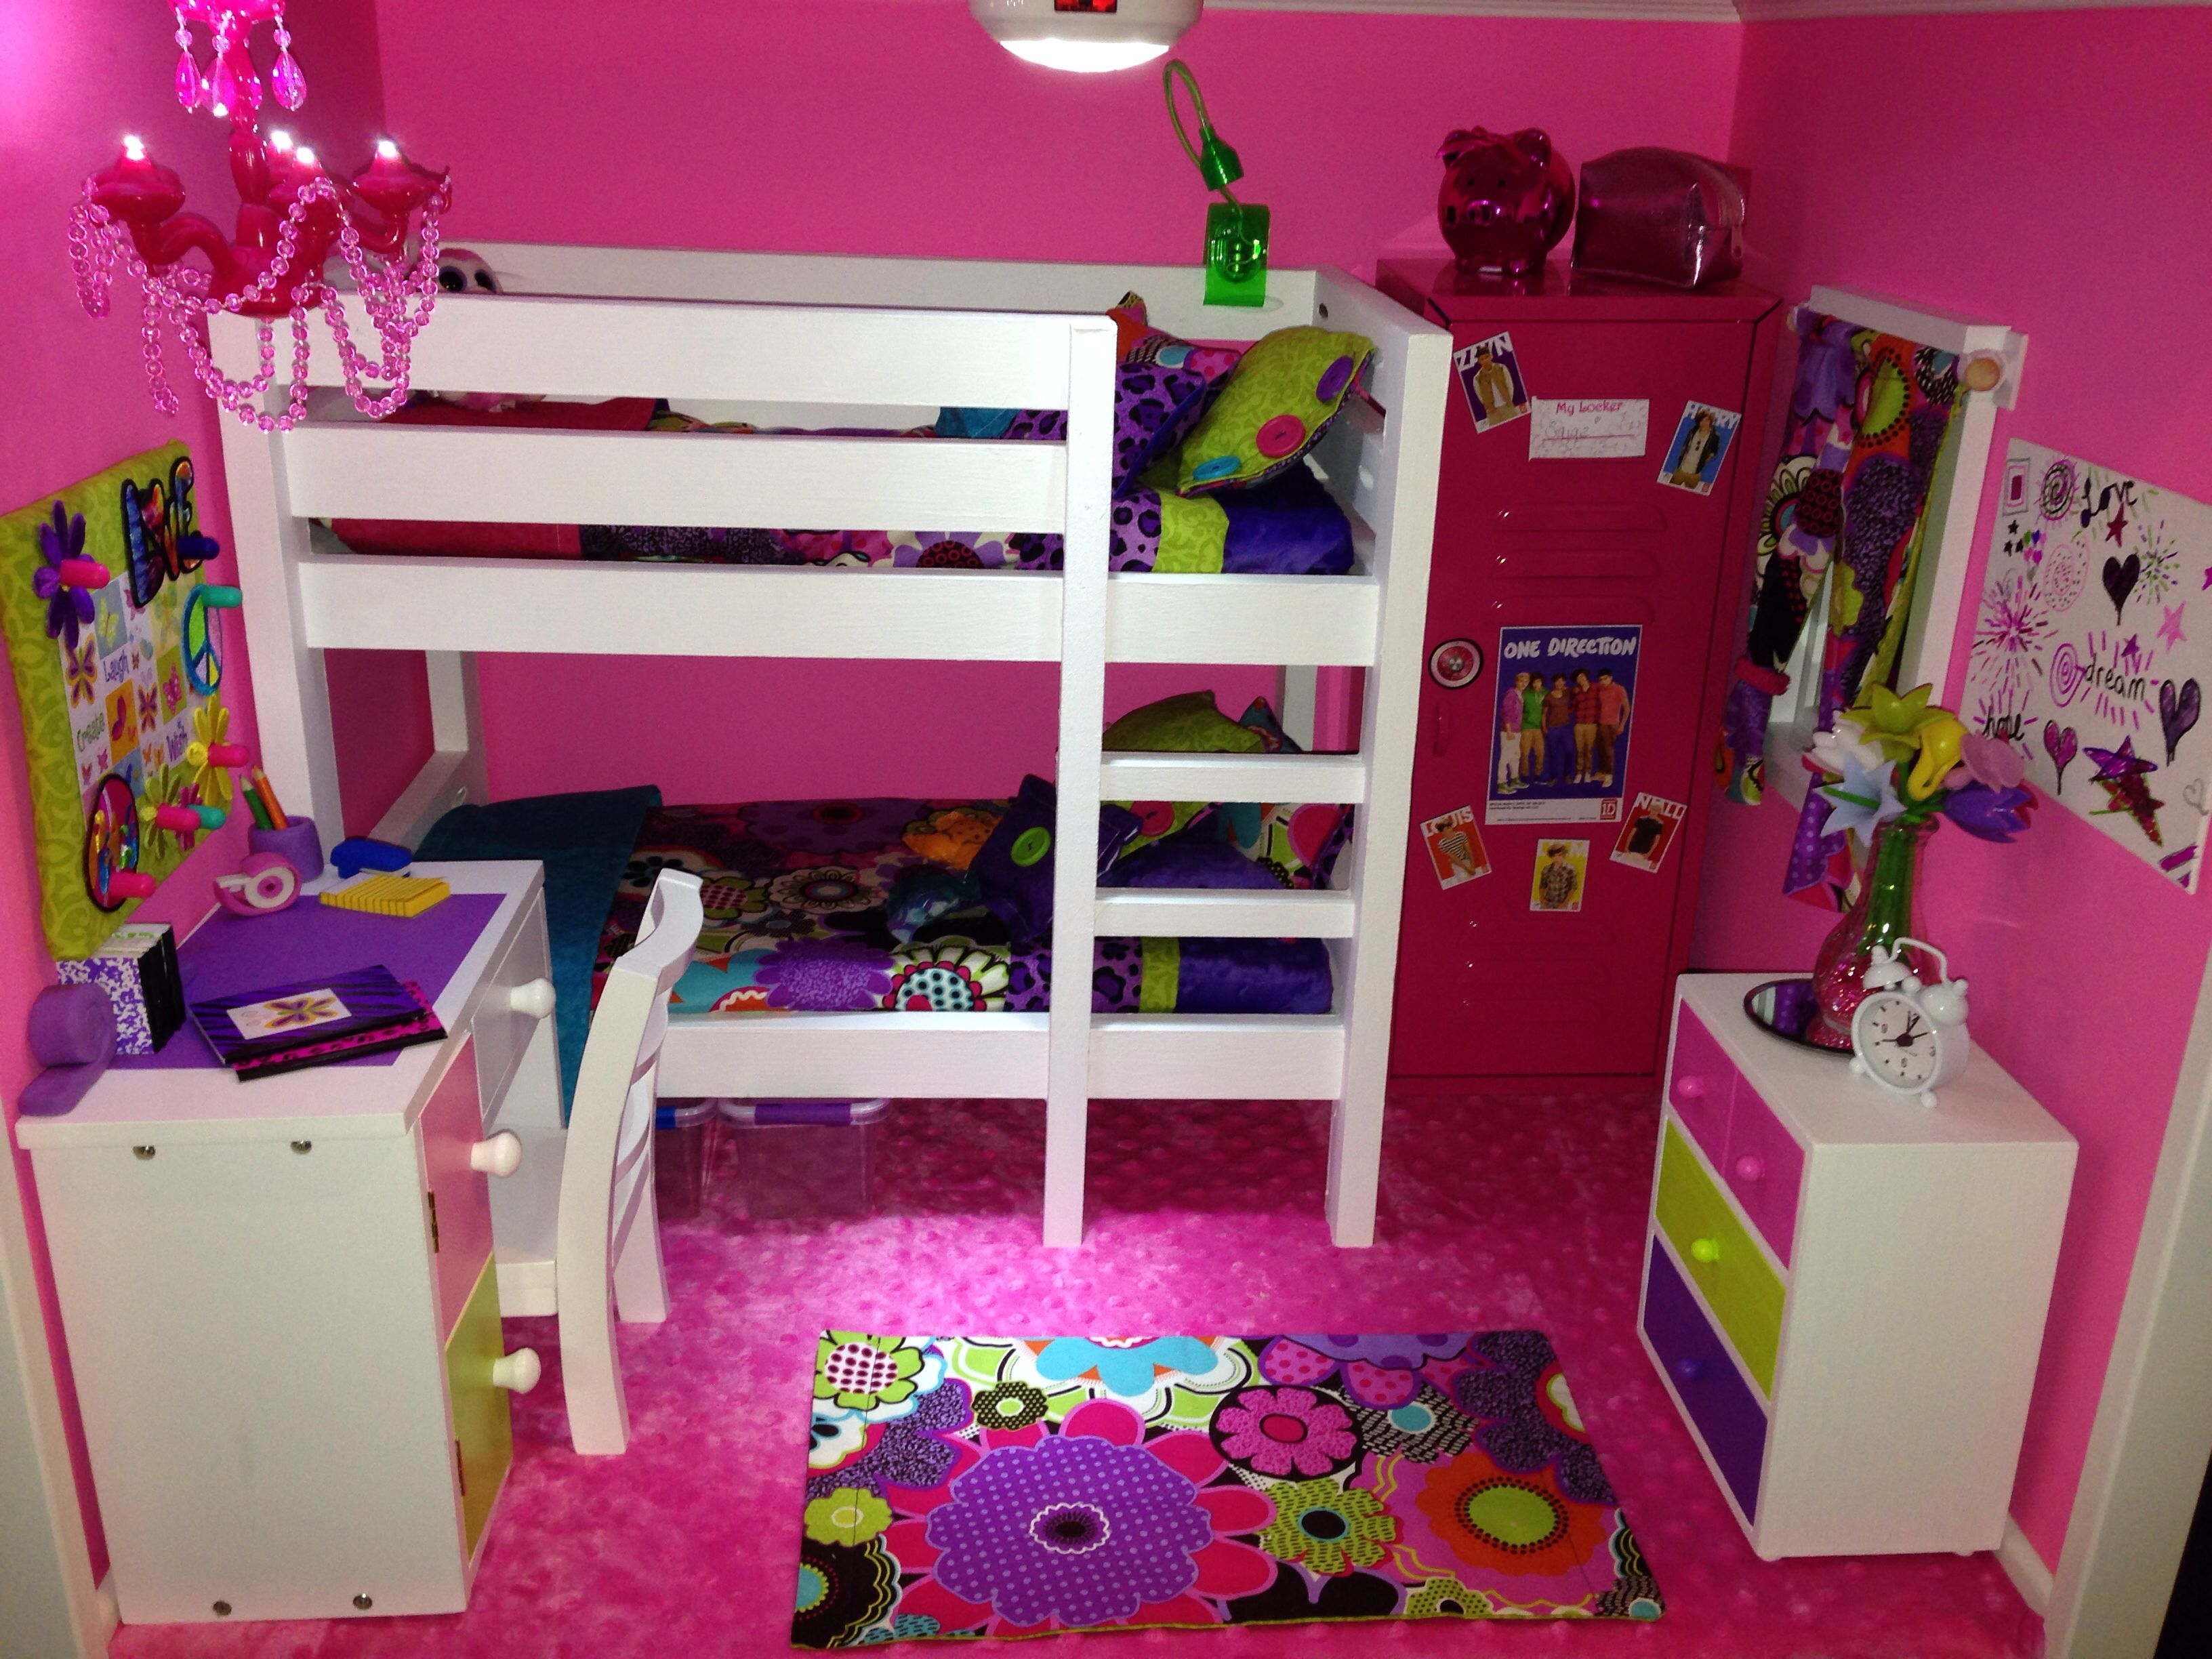 American Girl Doll House The Pink Bedroom We Made The